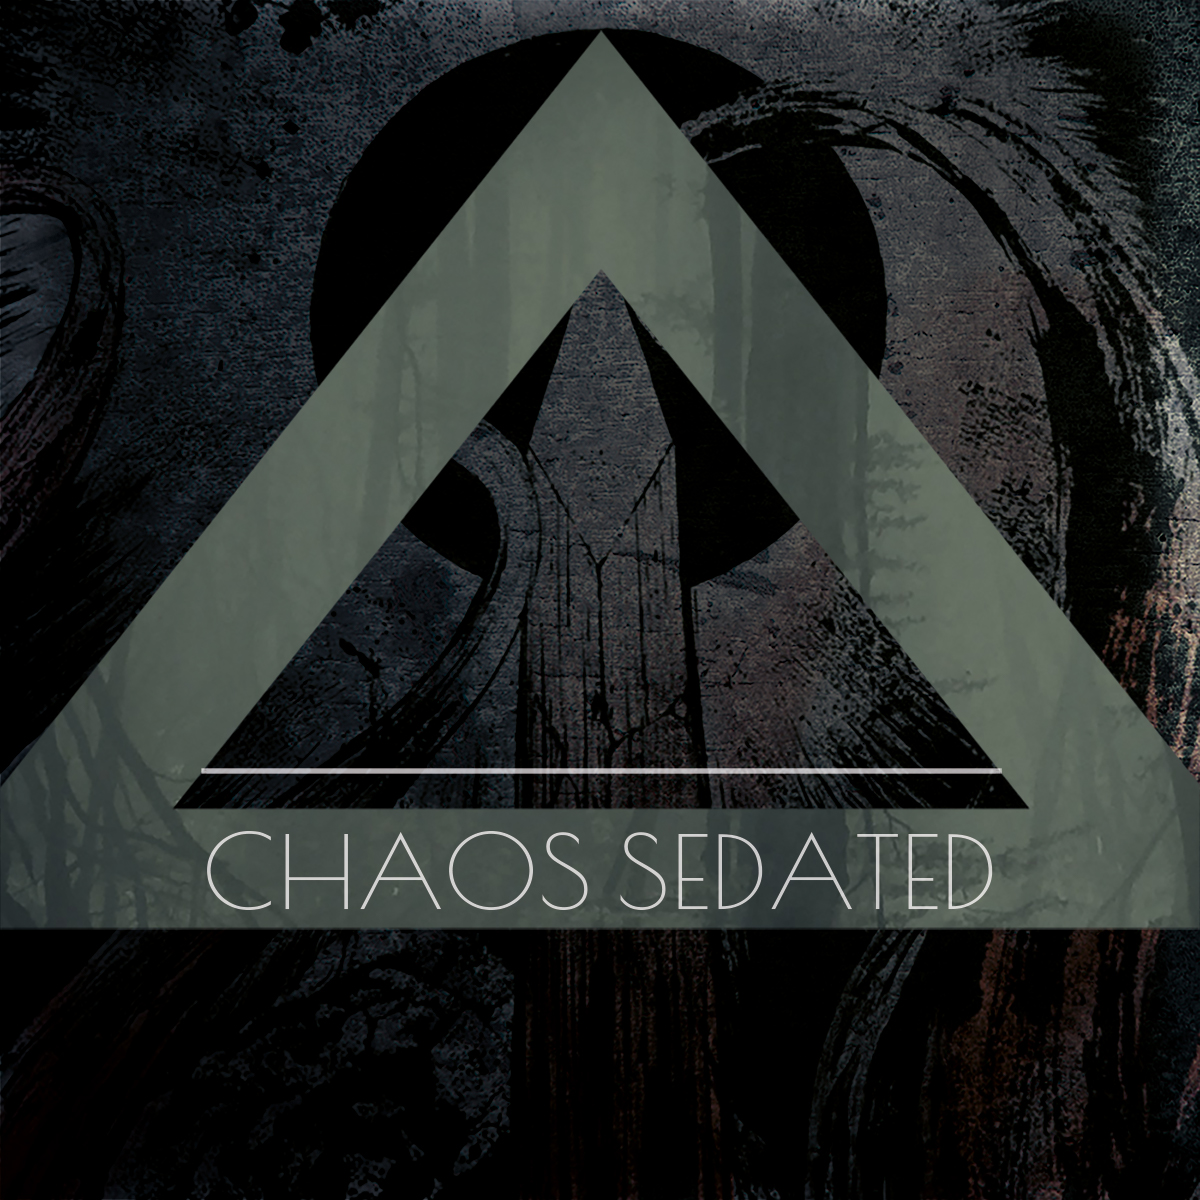 Chaos Sedated #181 (Dark Ambient, Industrial Podcast)